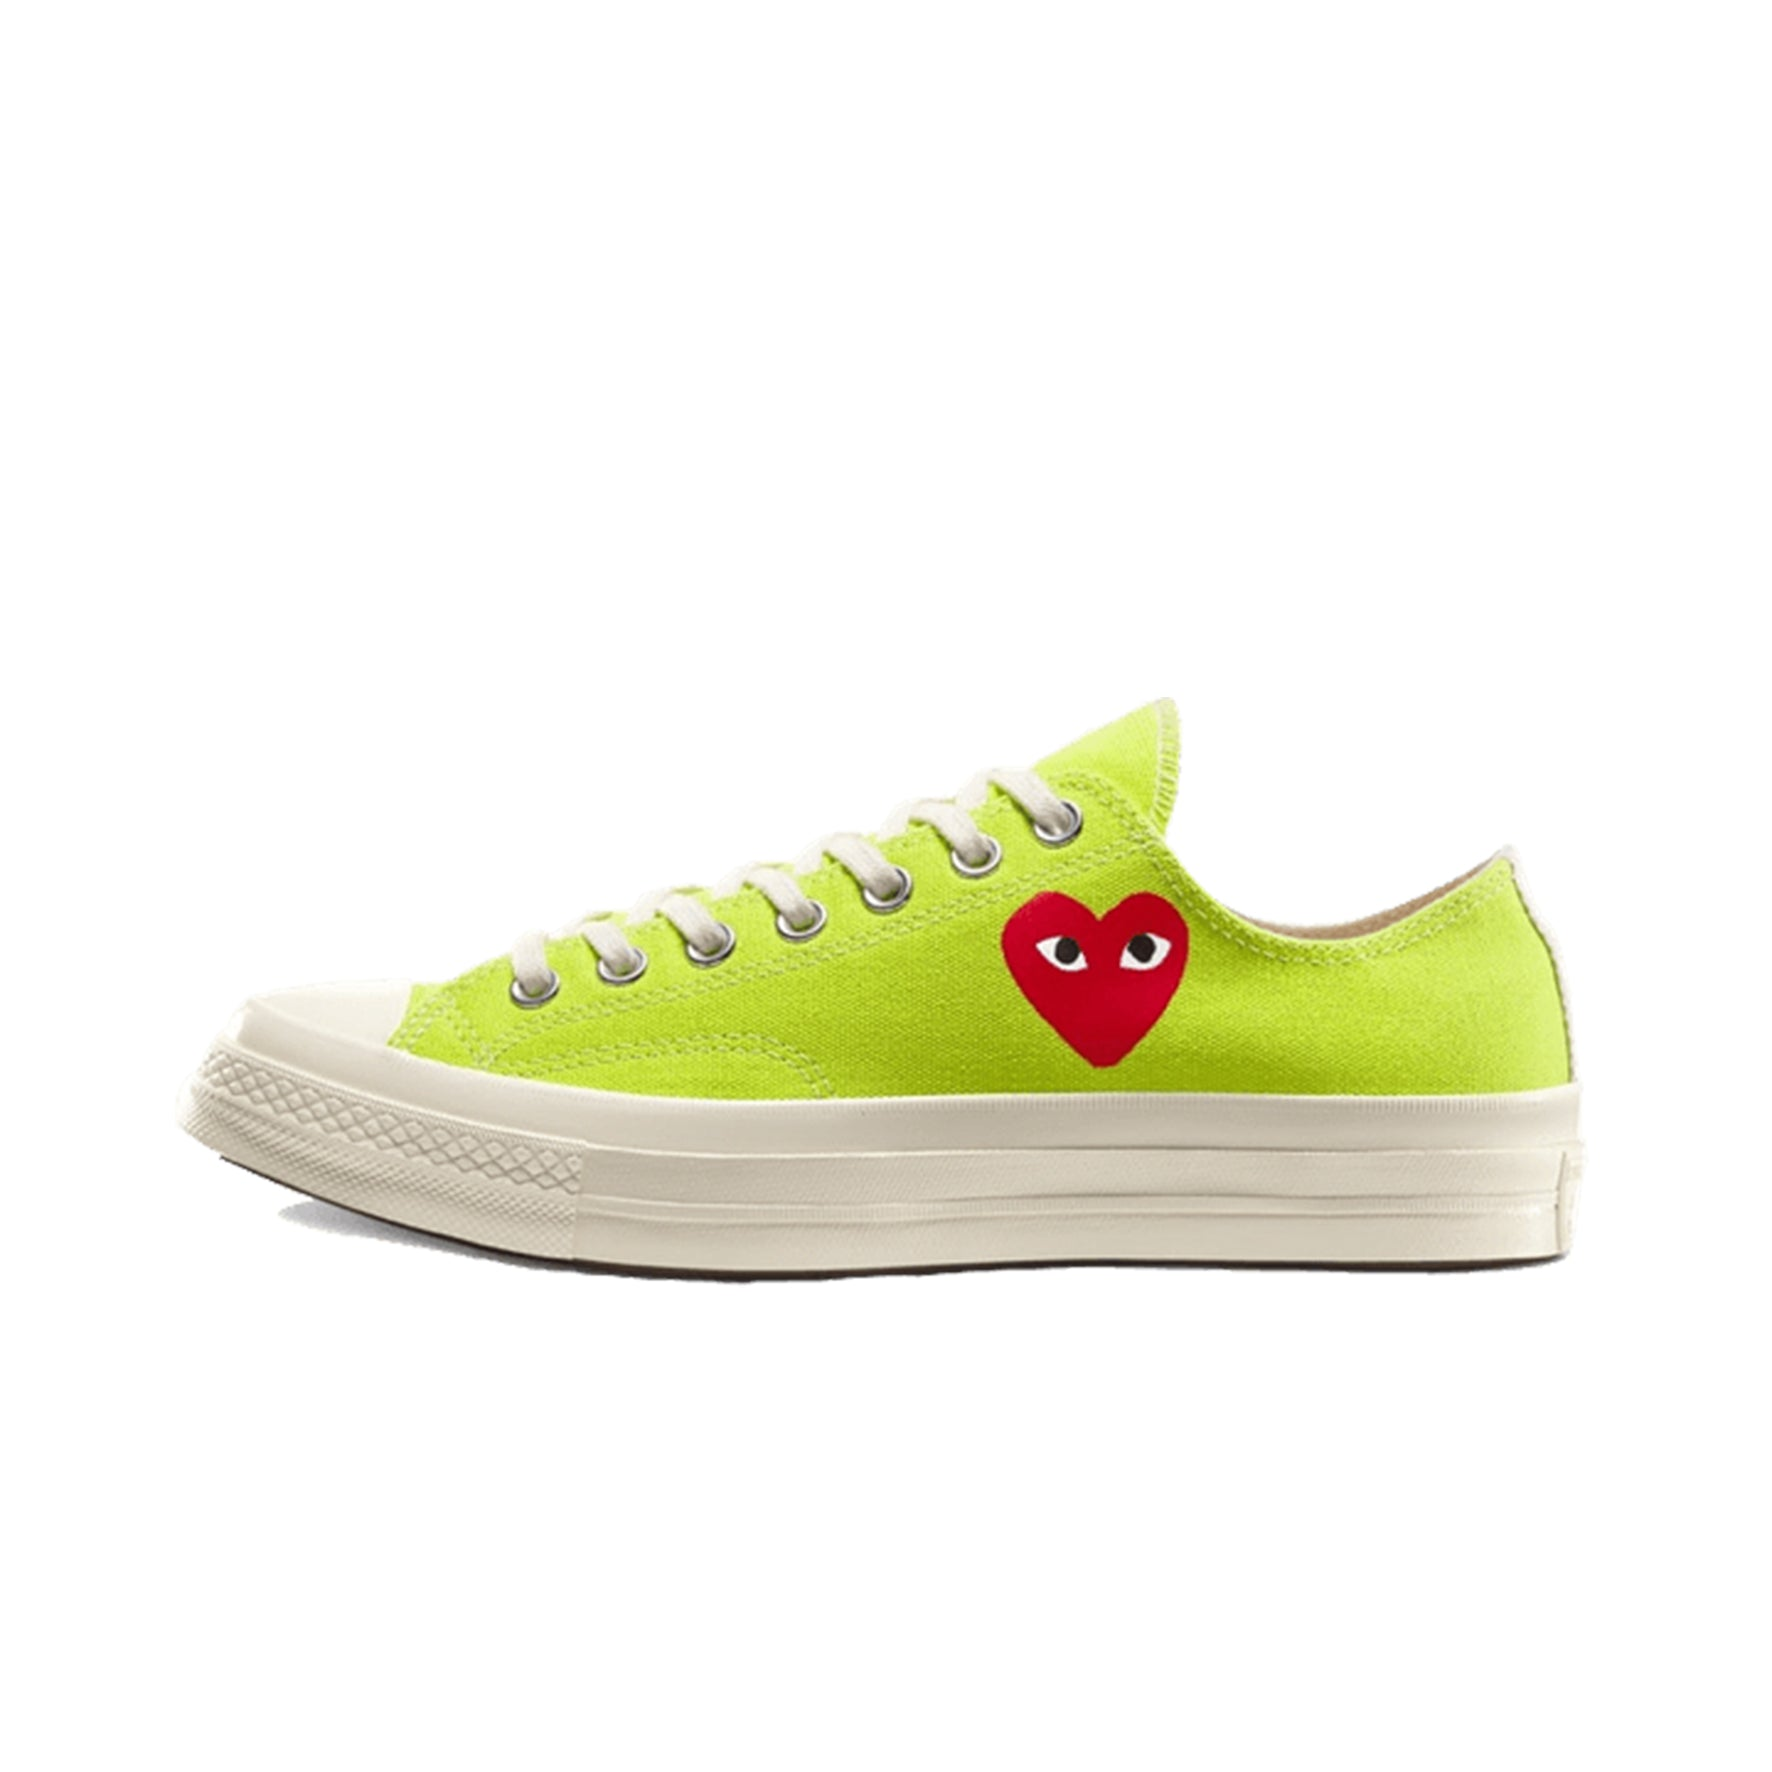 Converse Chuck Taylor All-Star 70s Ox Comme des Garcons PLAY Bright Green - 168302C - SneakersFromFrance